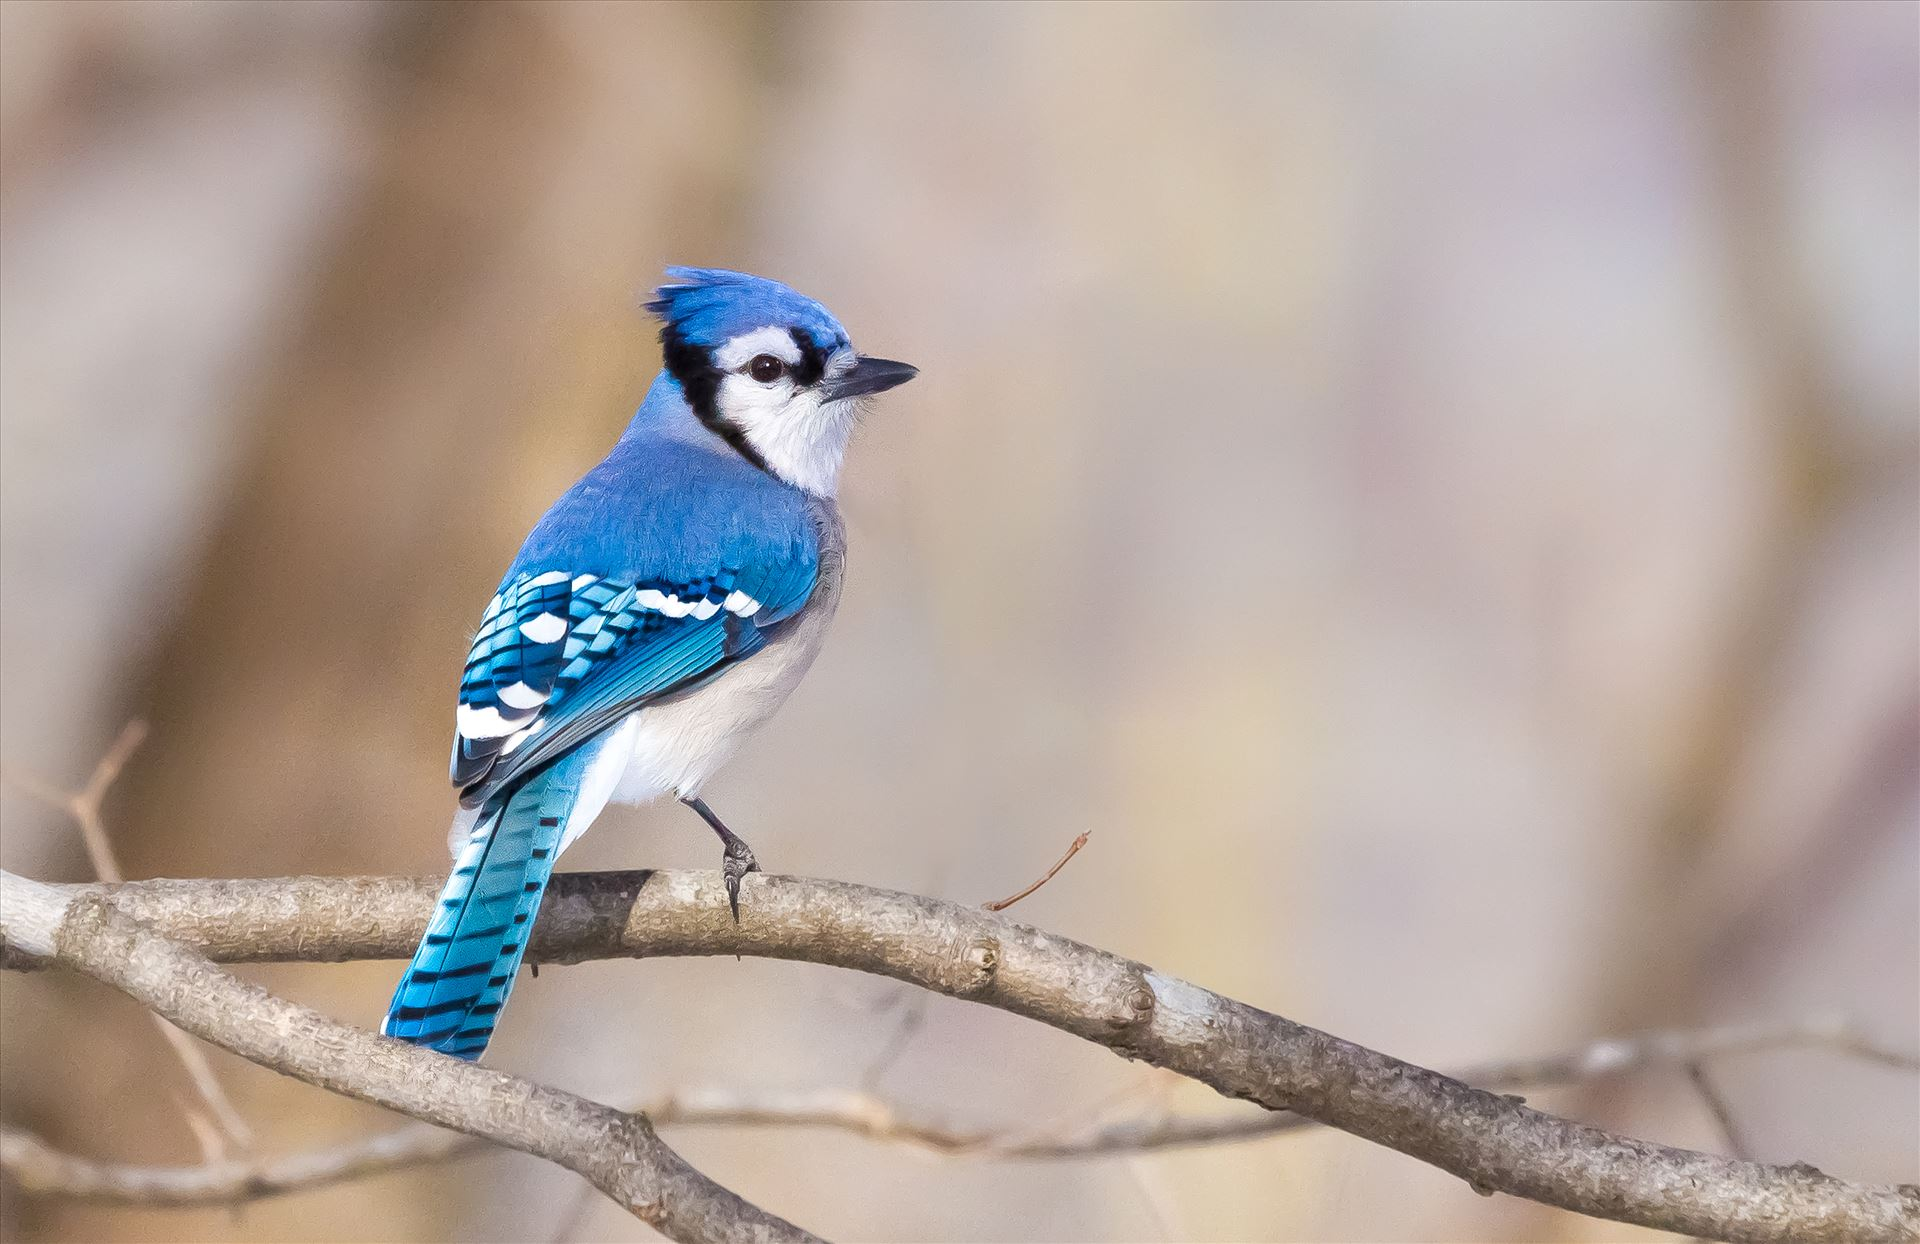 Blue Jay - Pennsylvania Blue Jay by Buckmaster